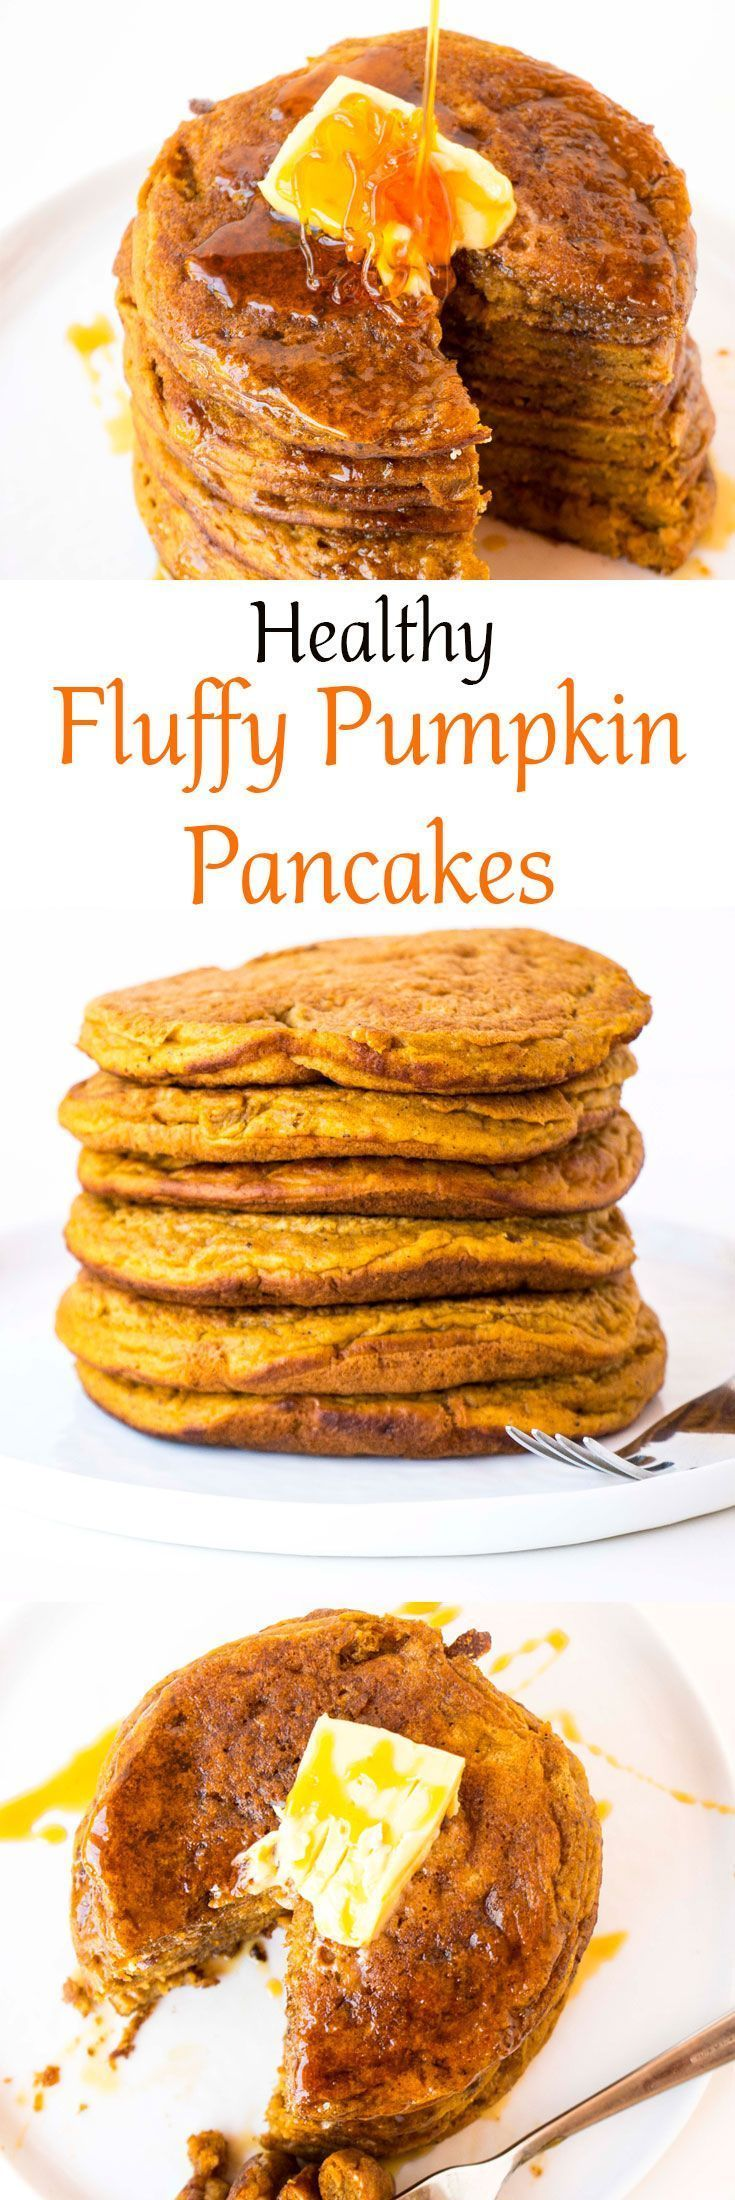 Fluffy Pumpkin Pancakes - Baking-Ginger